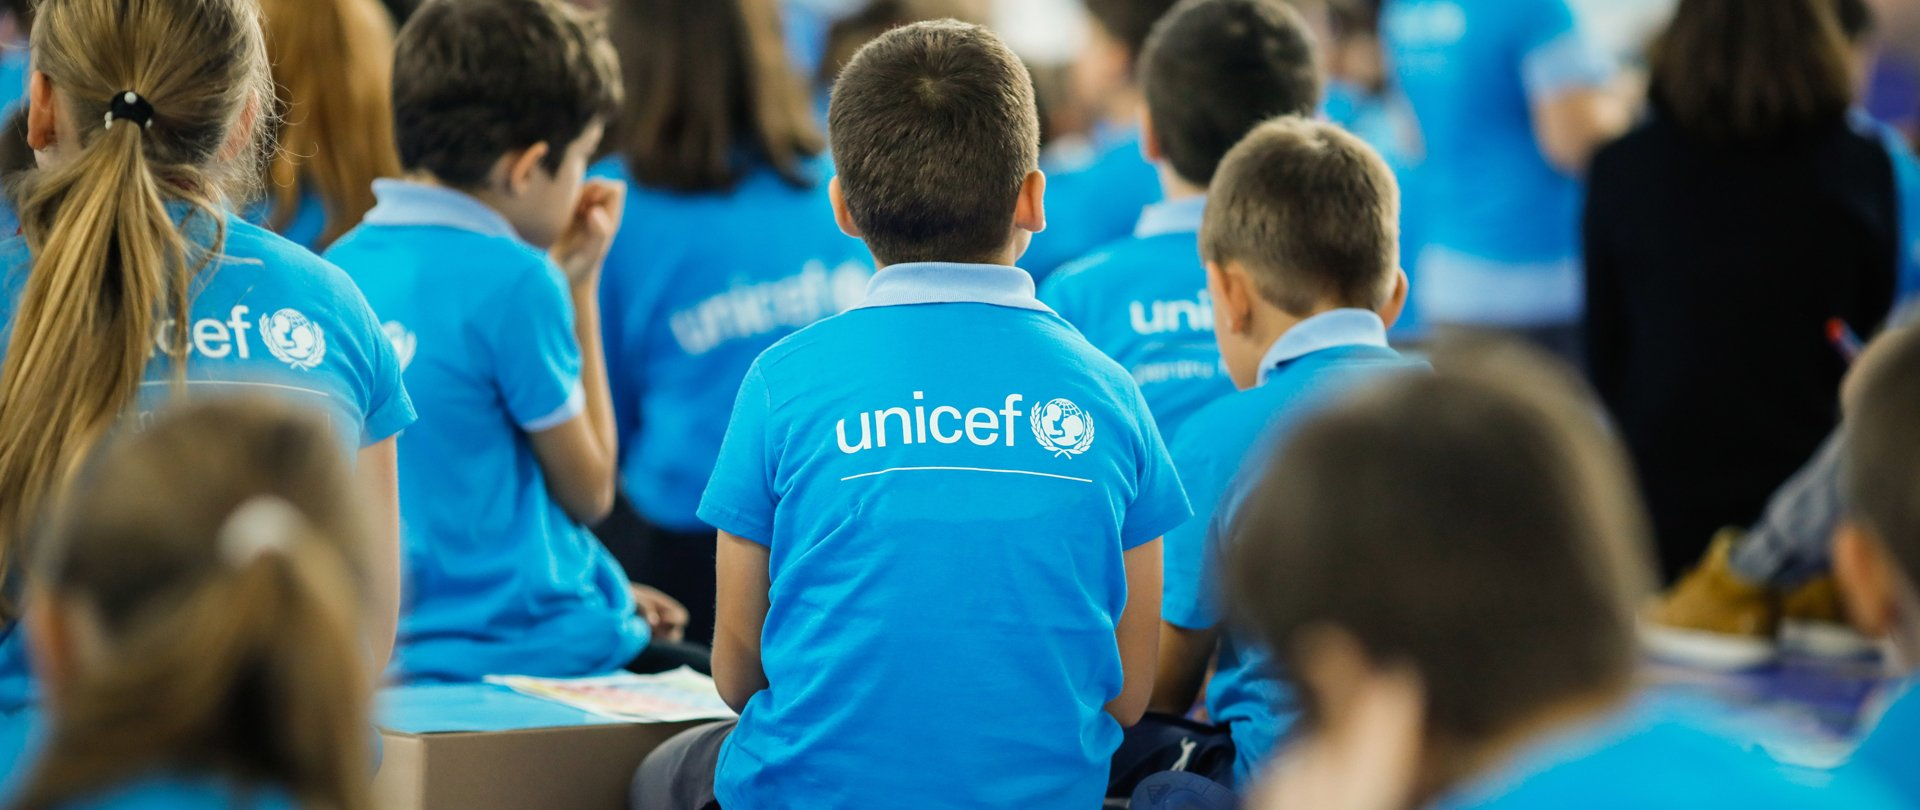 Child in a blue Unicef shirt